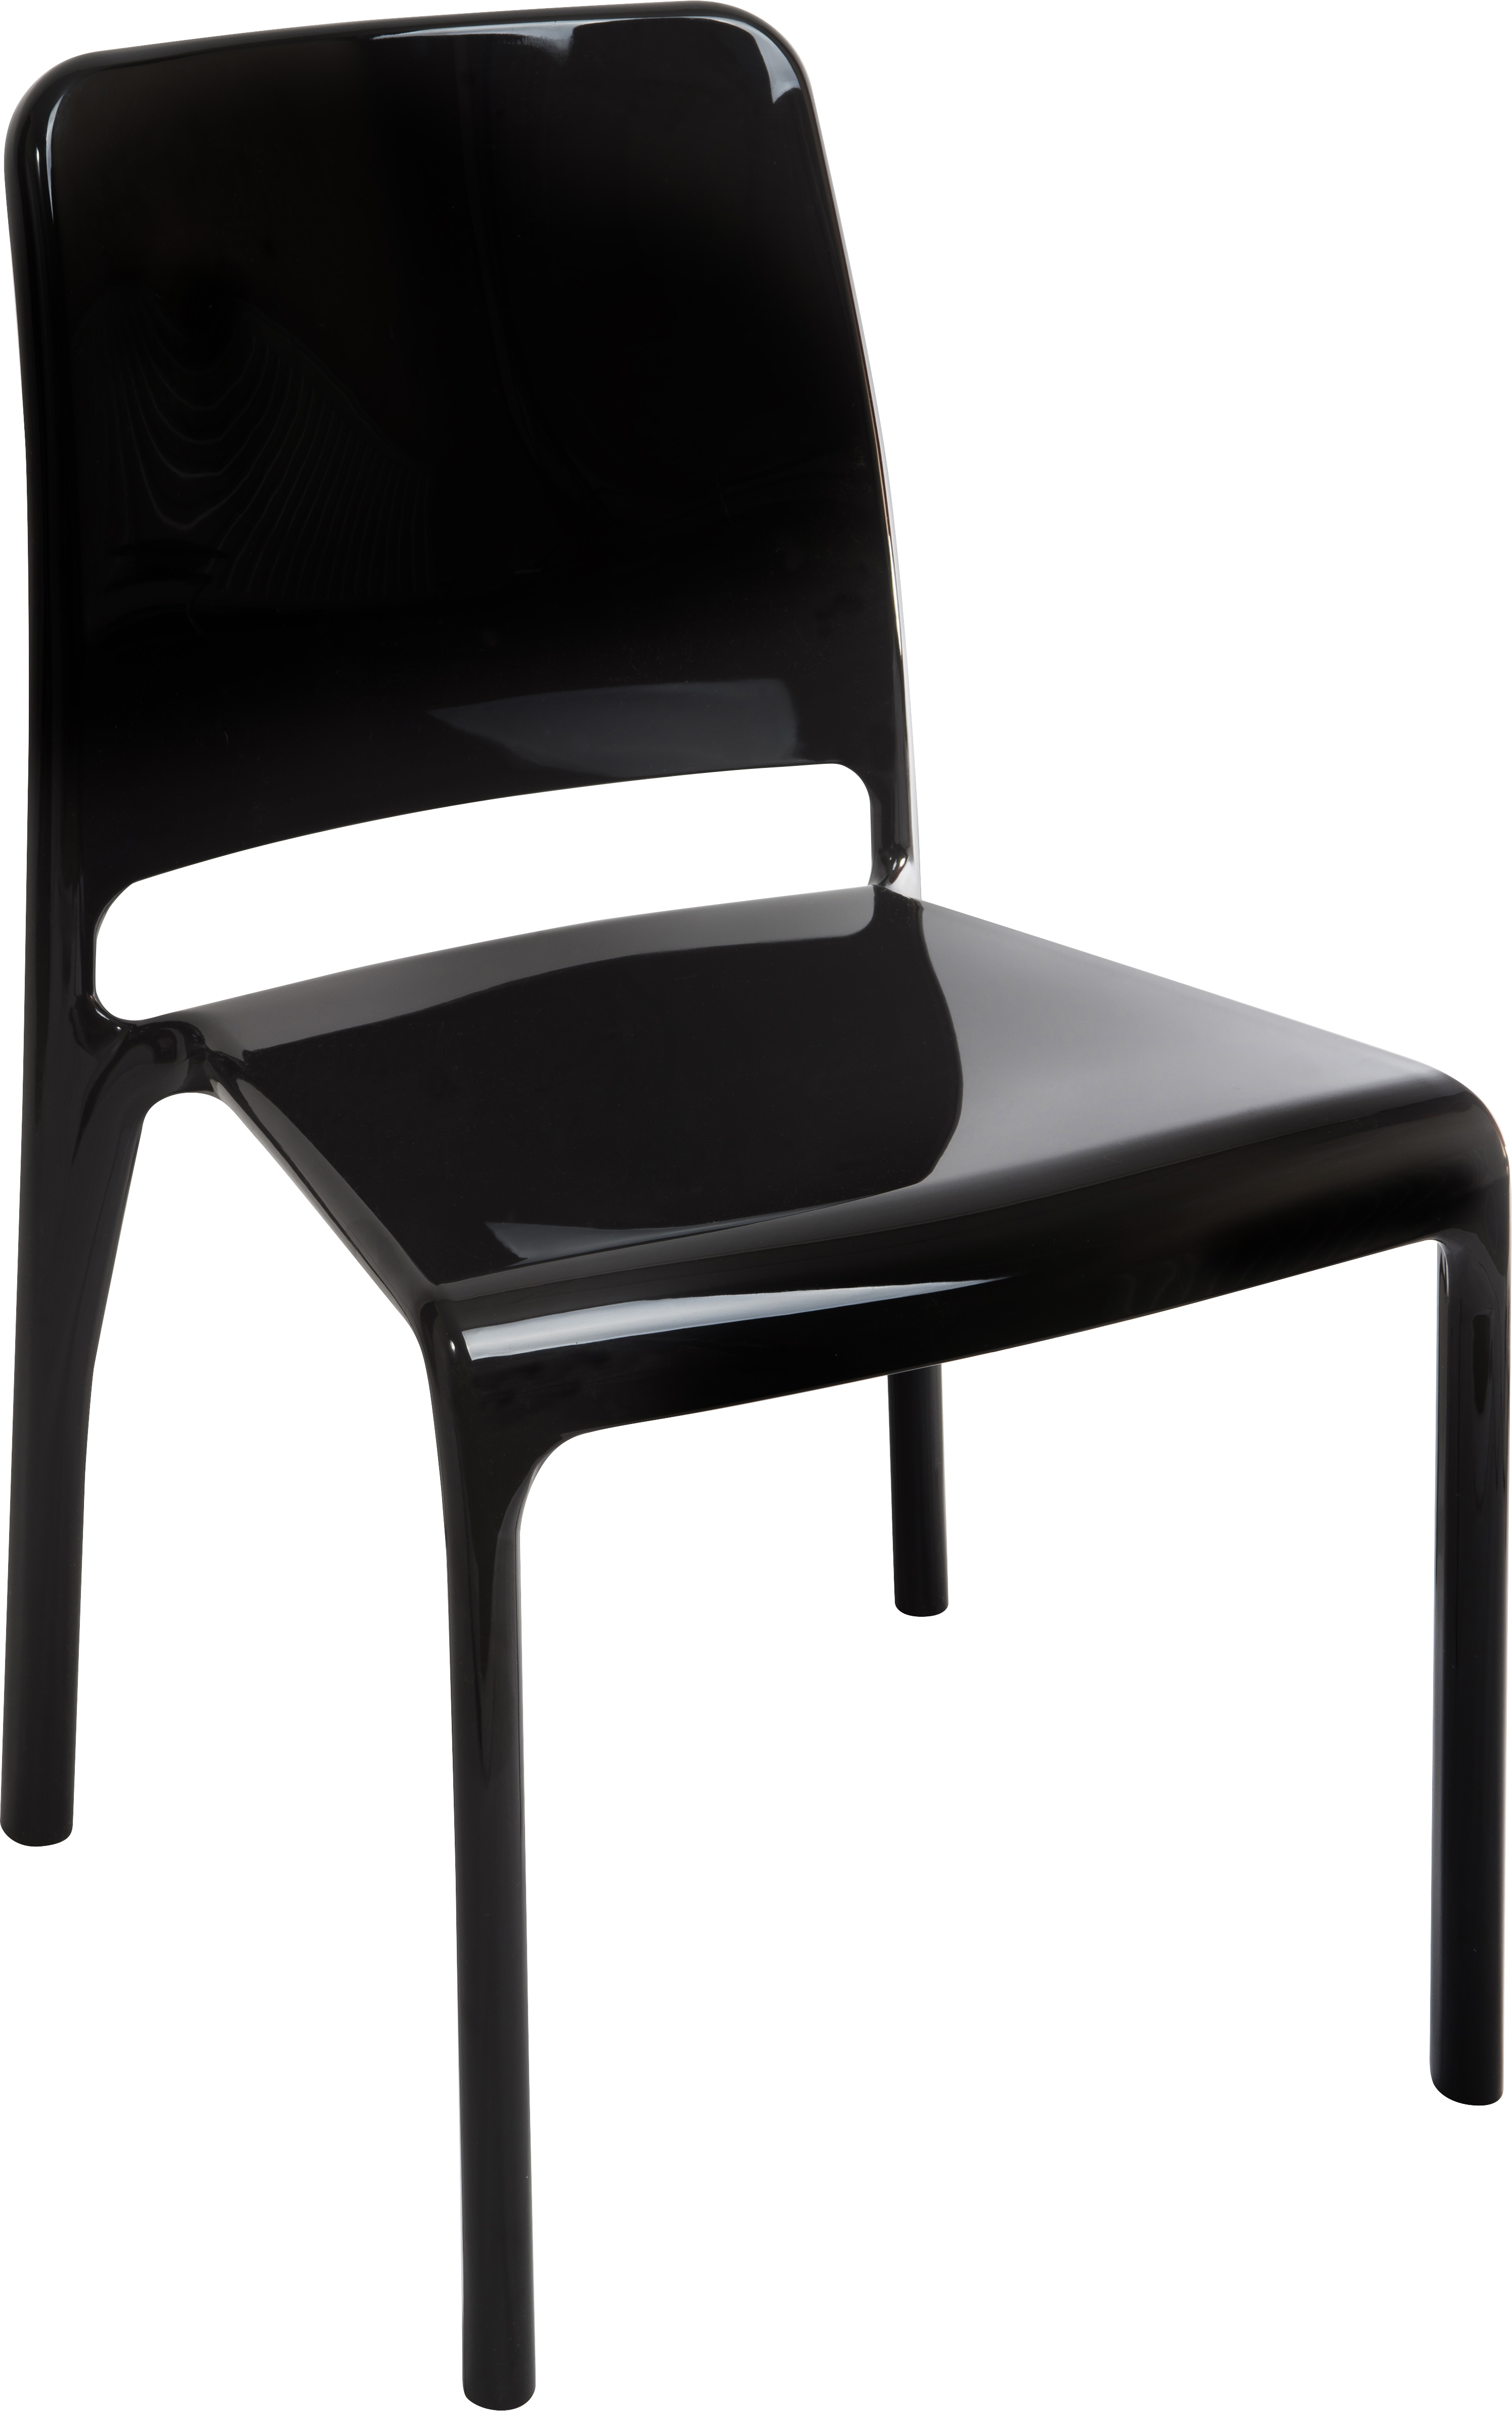 Teknik Office Clarity Black Stackable Polycarbonate Chair Sold In Packs Of 4